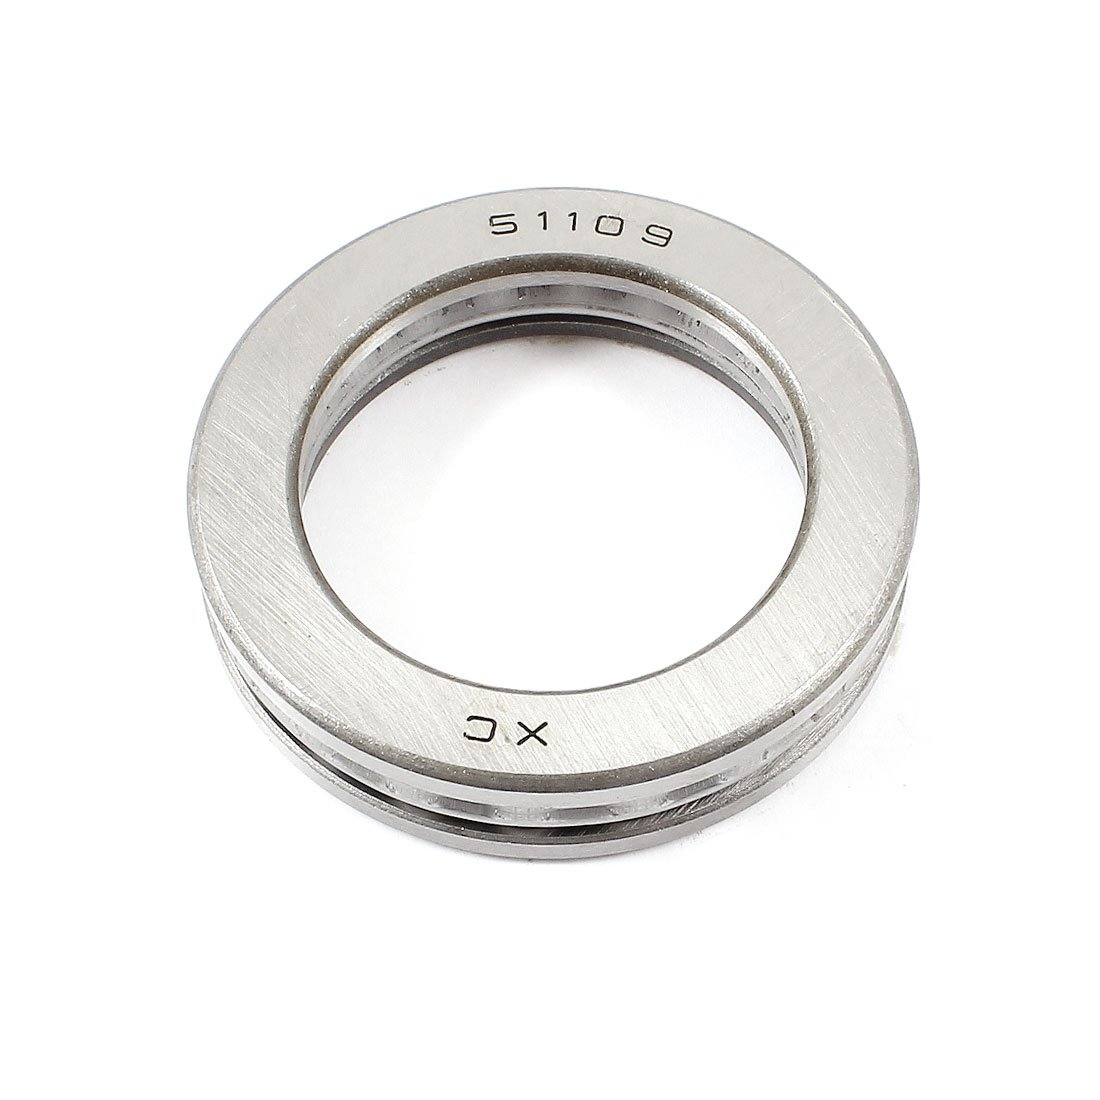 Uxcell a14061000ux0792 Carbon Steel Ball Thrust Bearing 51109 45mm x 65mm x 14mm, 1.8 Carbon Steel